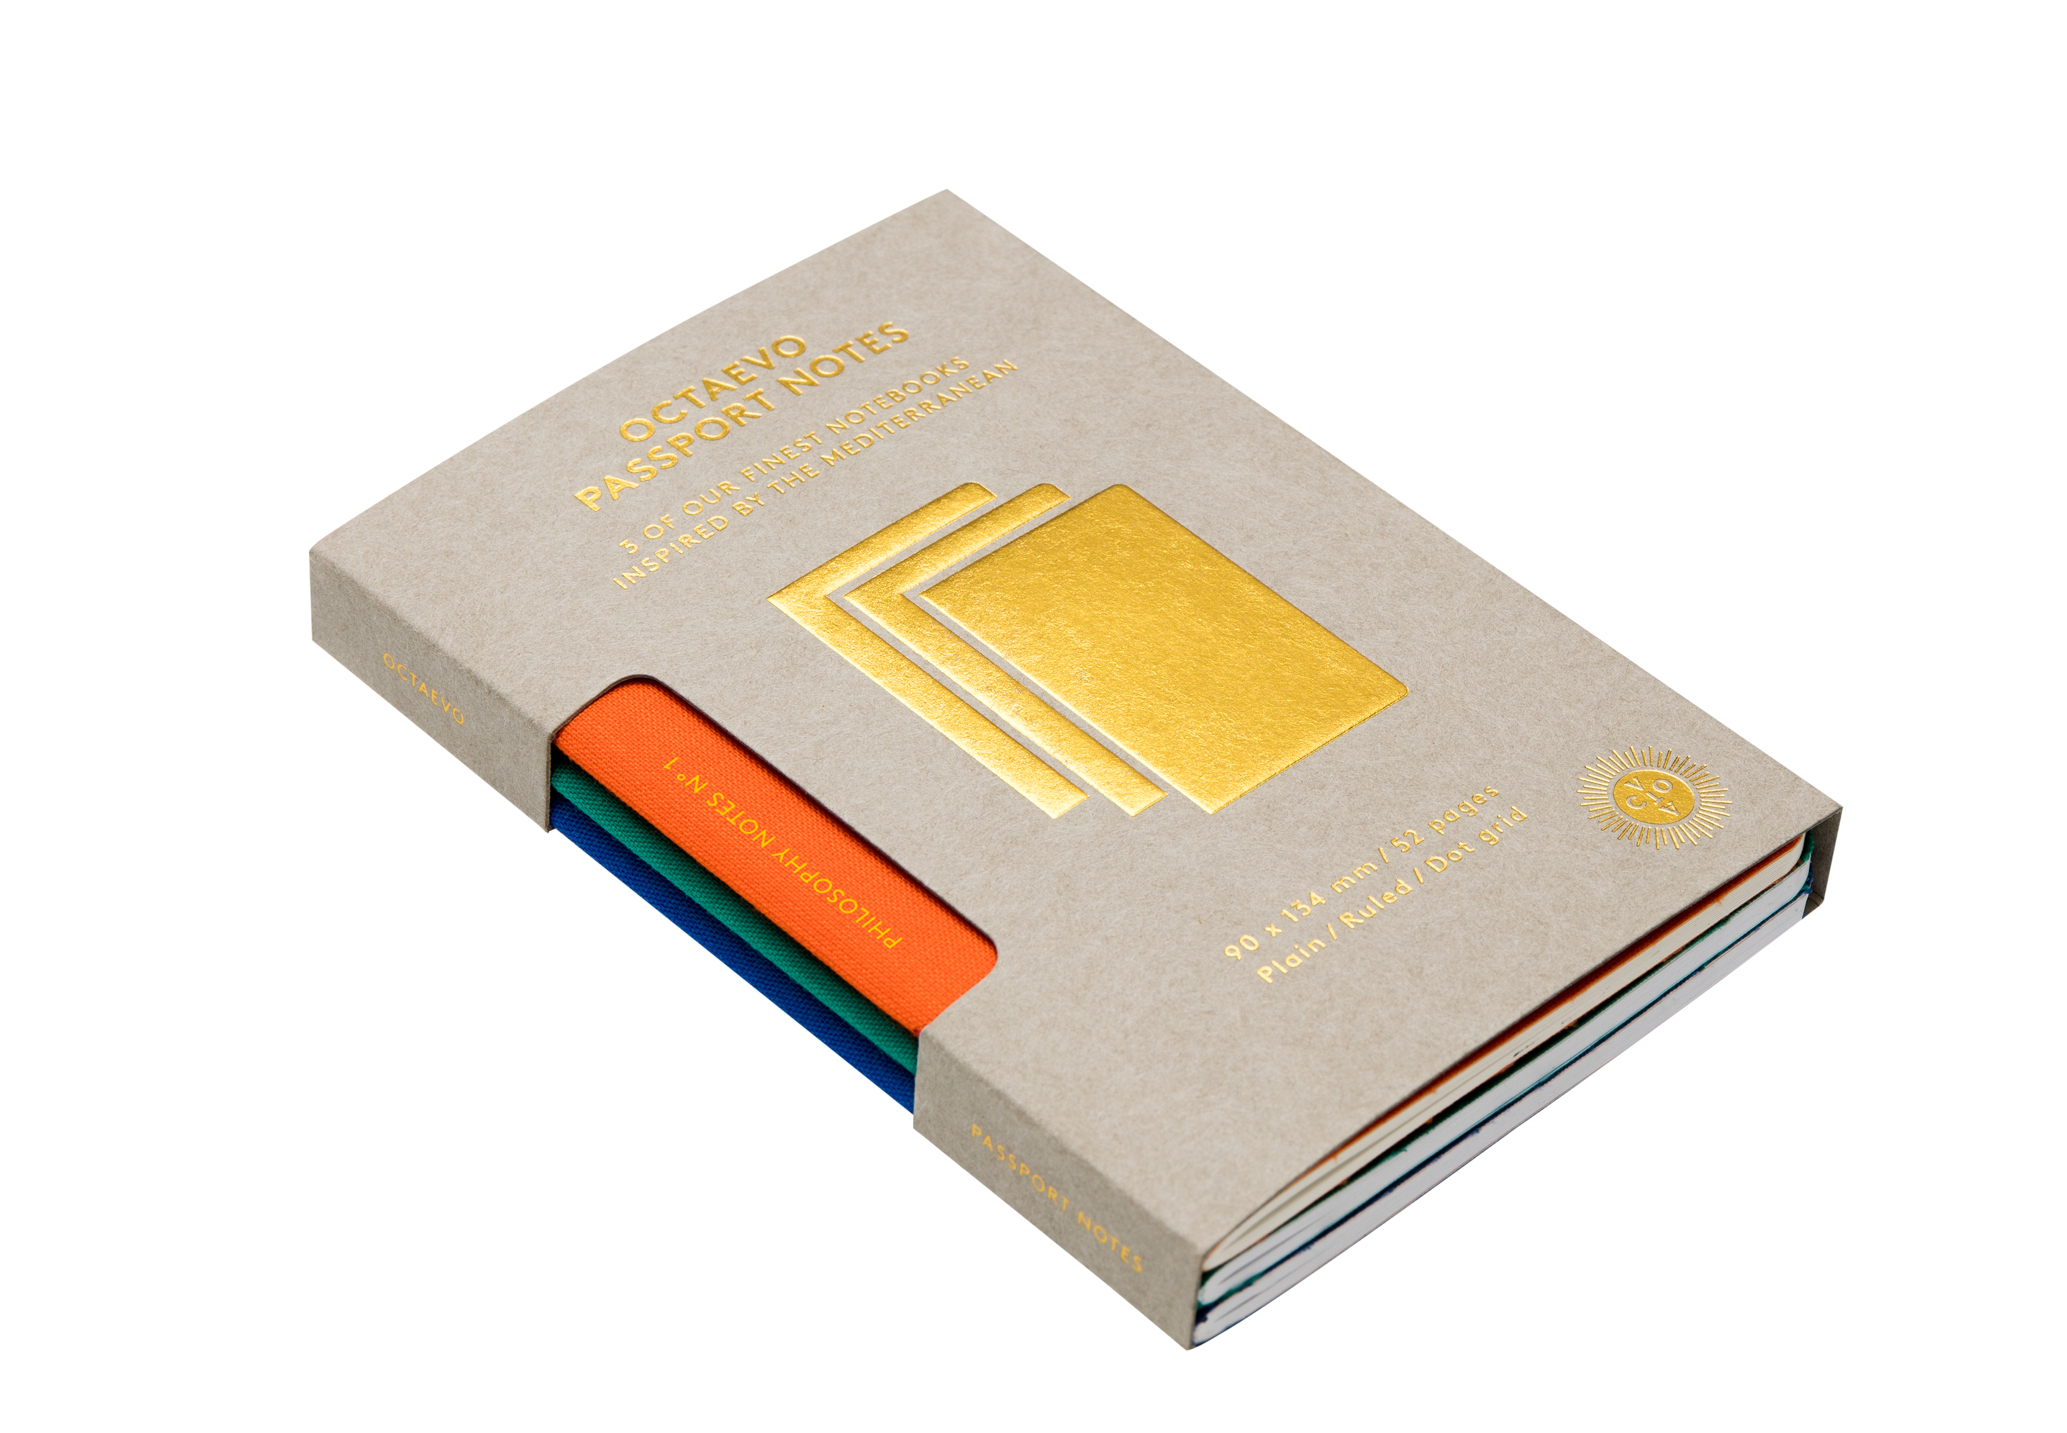 OBPPN-15 - Passport Philosophy Notes Box Of 3